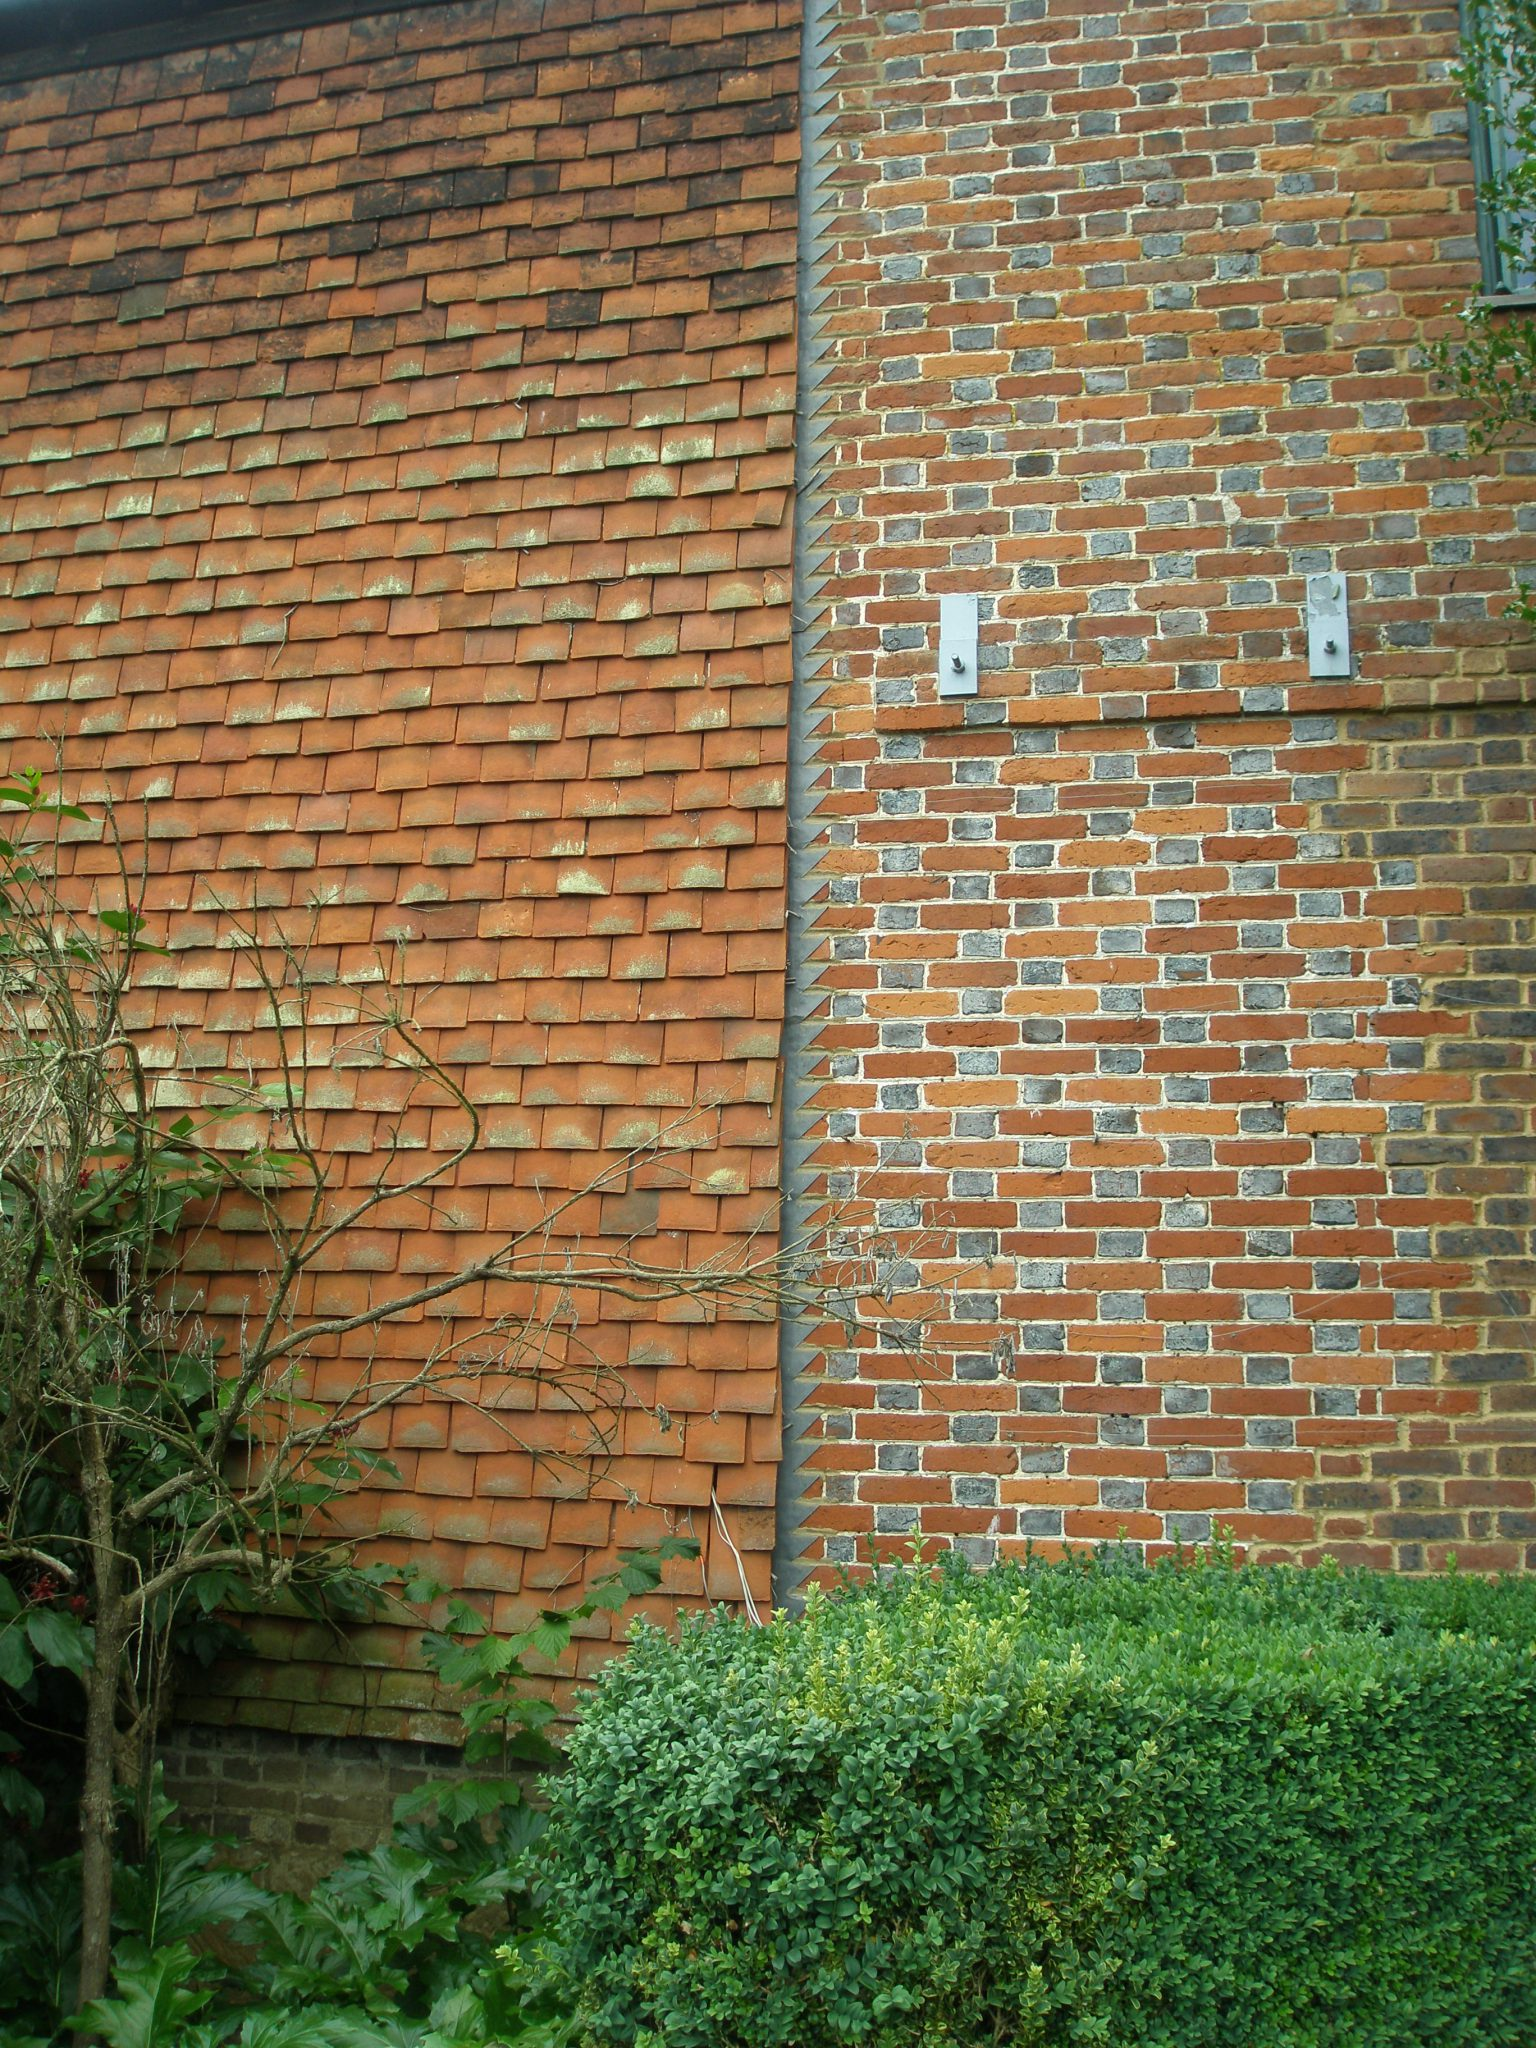 "The Cottages adjacent to the Oriental Garden offer excellent examples of Kentish tile-hung walls. This method of covering the exteriors of timber-framed houses first appeared in the late 17th century. The tiles are hung on oak laths, with the upper part of each tile bedded into a lime and hair mortar known as ""torching."" The laths are hung overlapping to give a triple lap, which results in a weathertight wall."